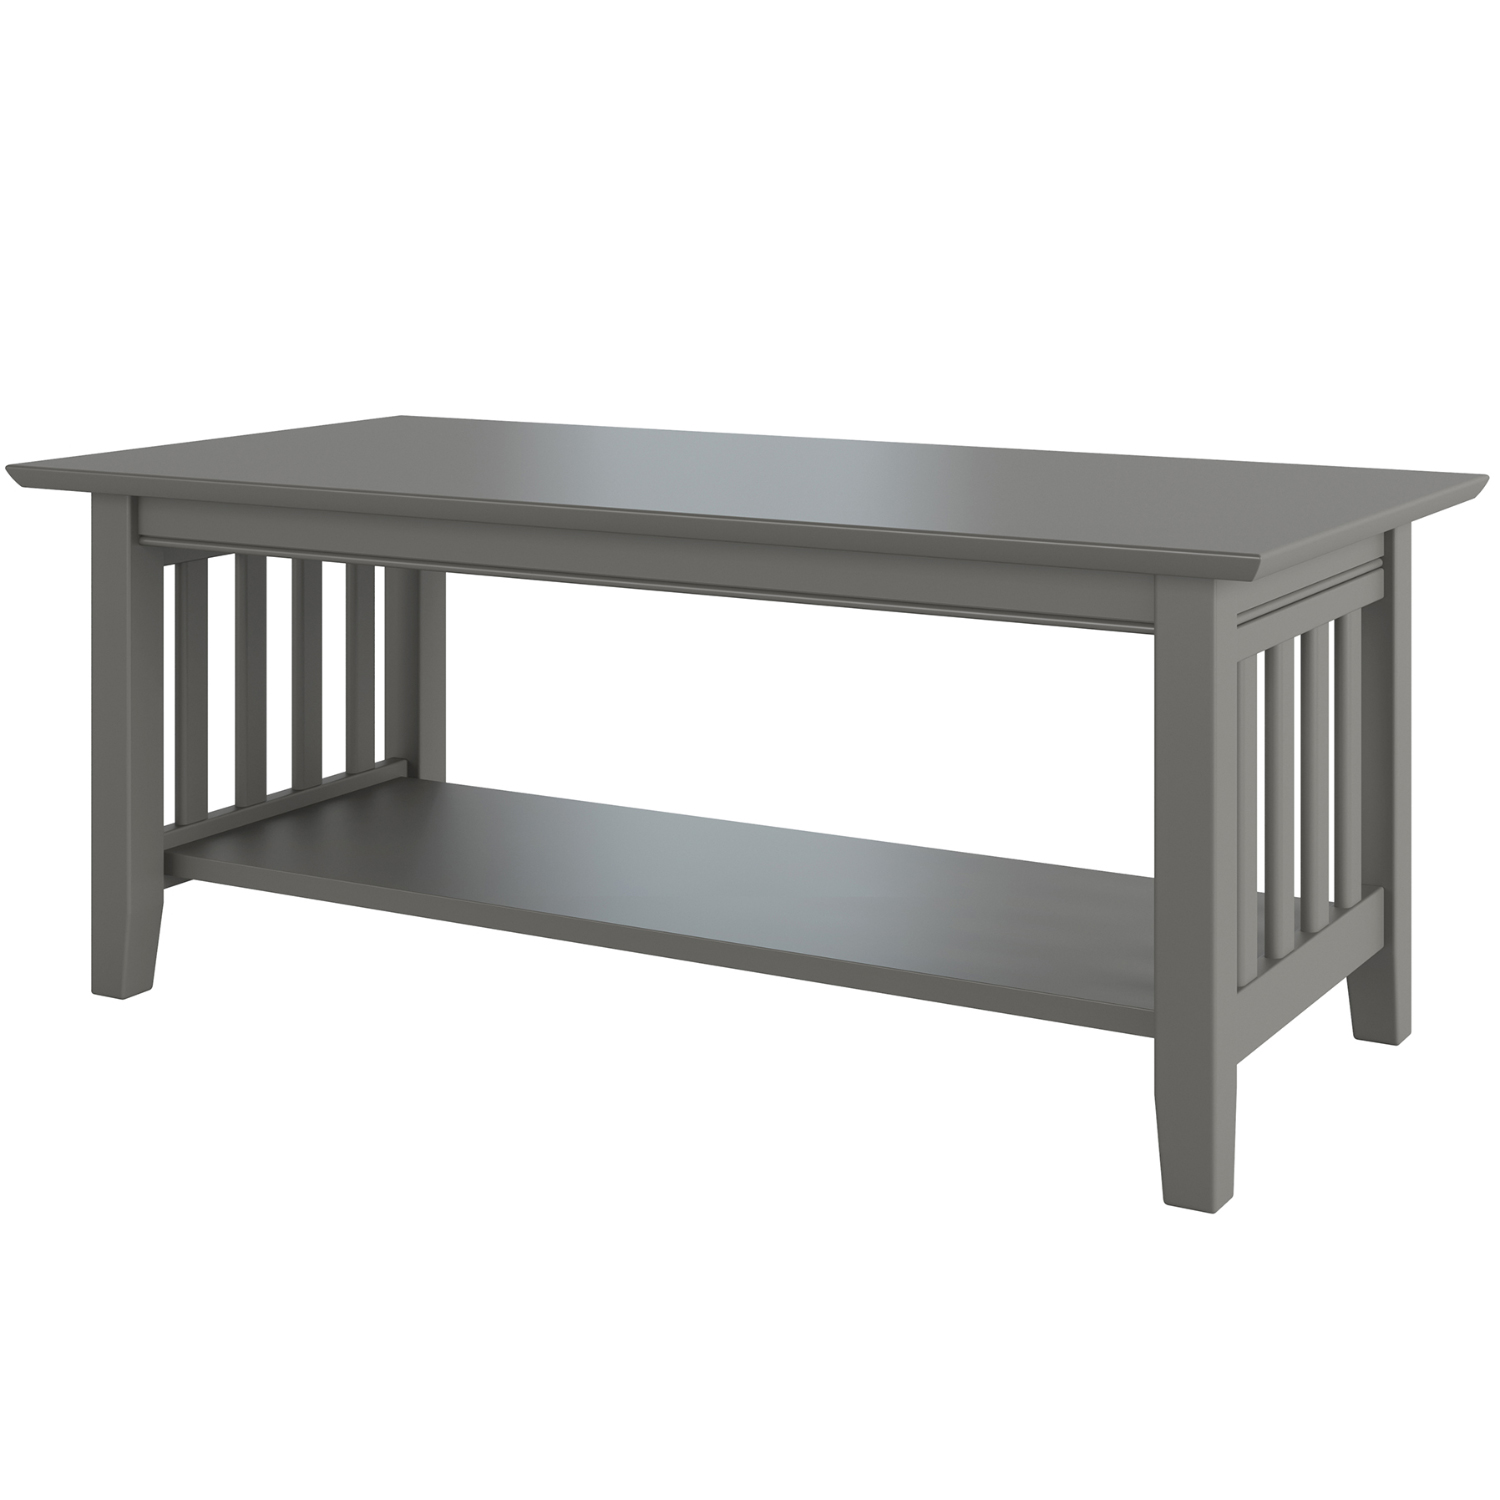 Mission Coffee Table In Grey Wood By Atlantic Furniture